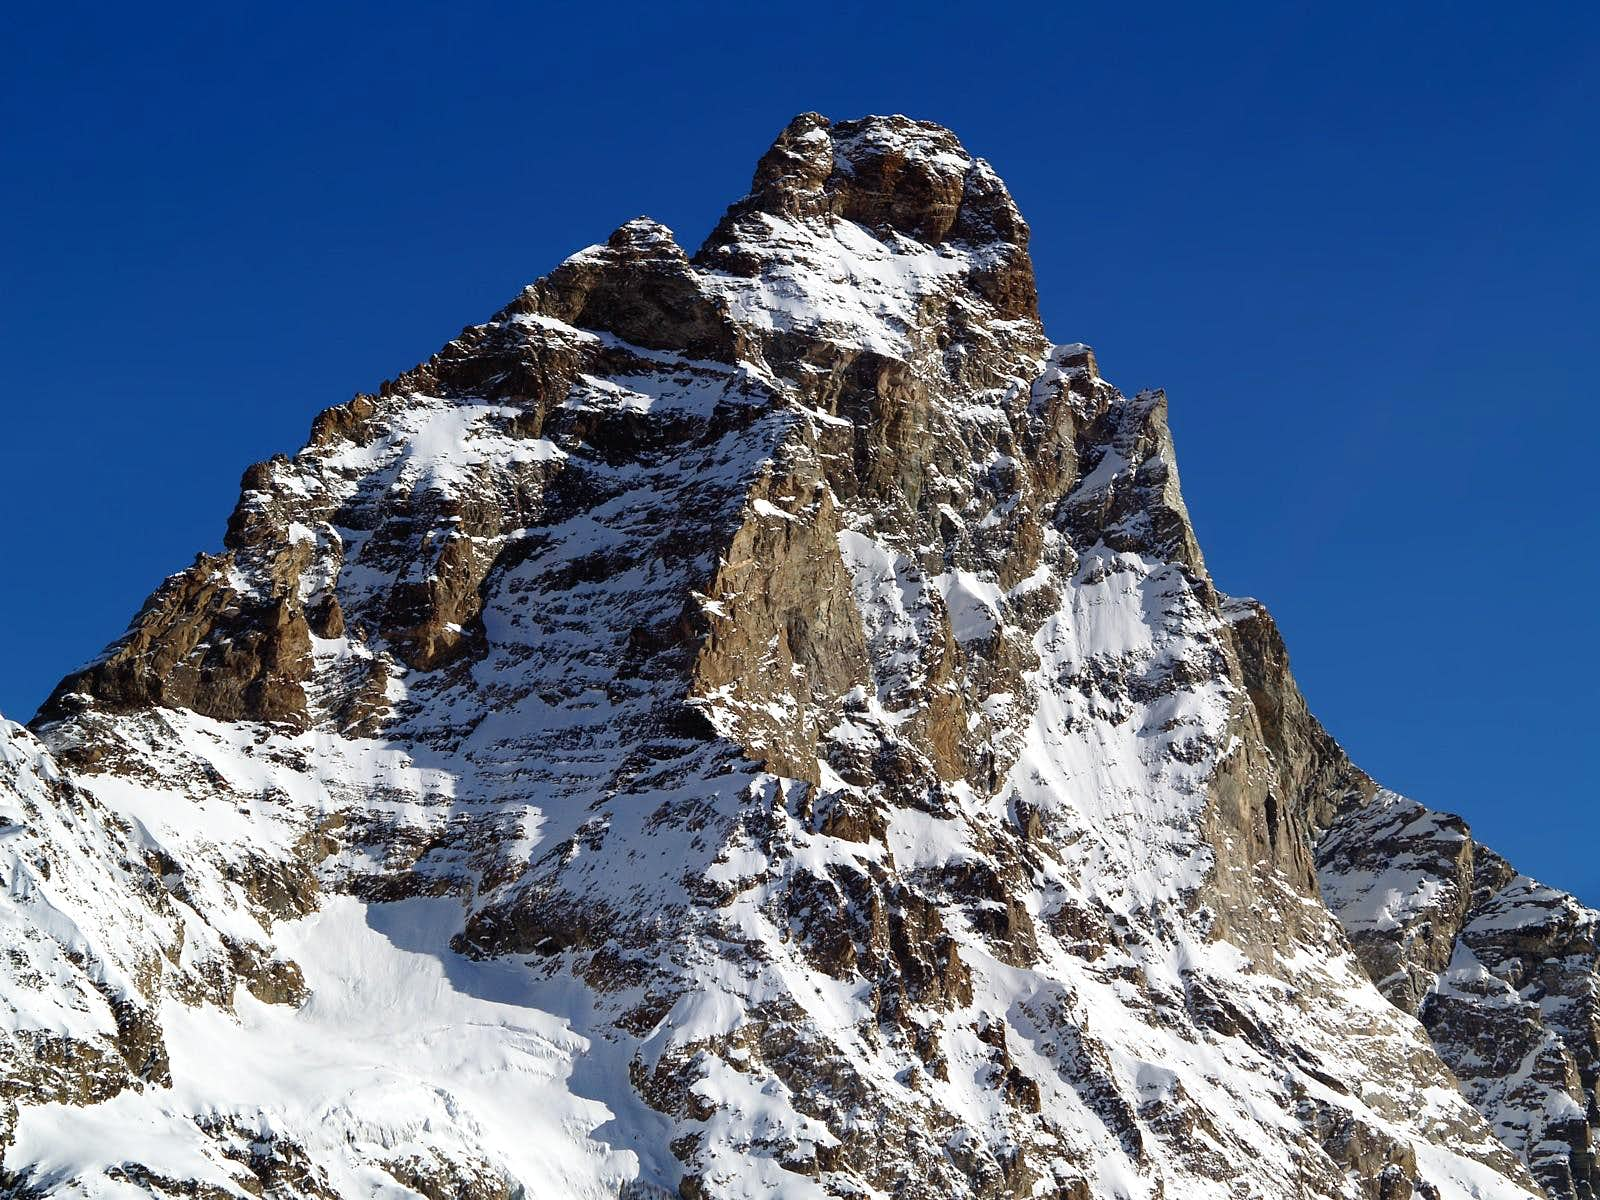 Views of Monte Cervino (Matterhorn)